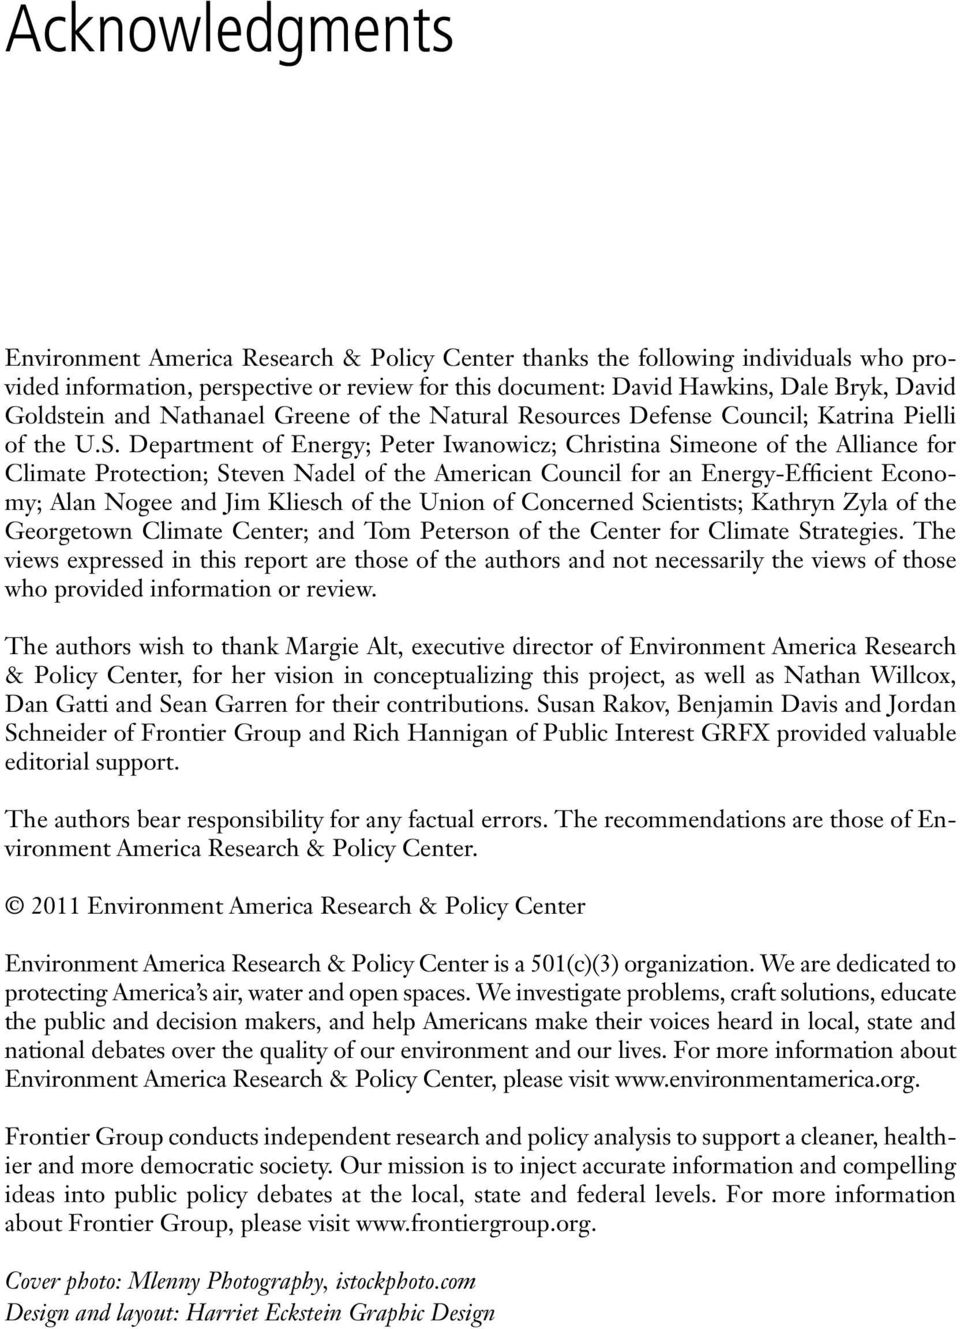 Department of Energy; Peter Iwanowicz; Christina Simeone of the Alliance for Climate Protection; Steven Nadel of the American Council for an Energy-Efficient Economy; Alan Nogee and Jim Kliesch of